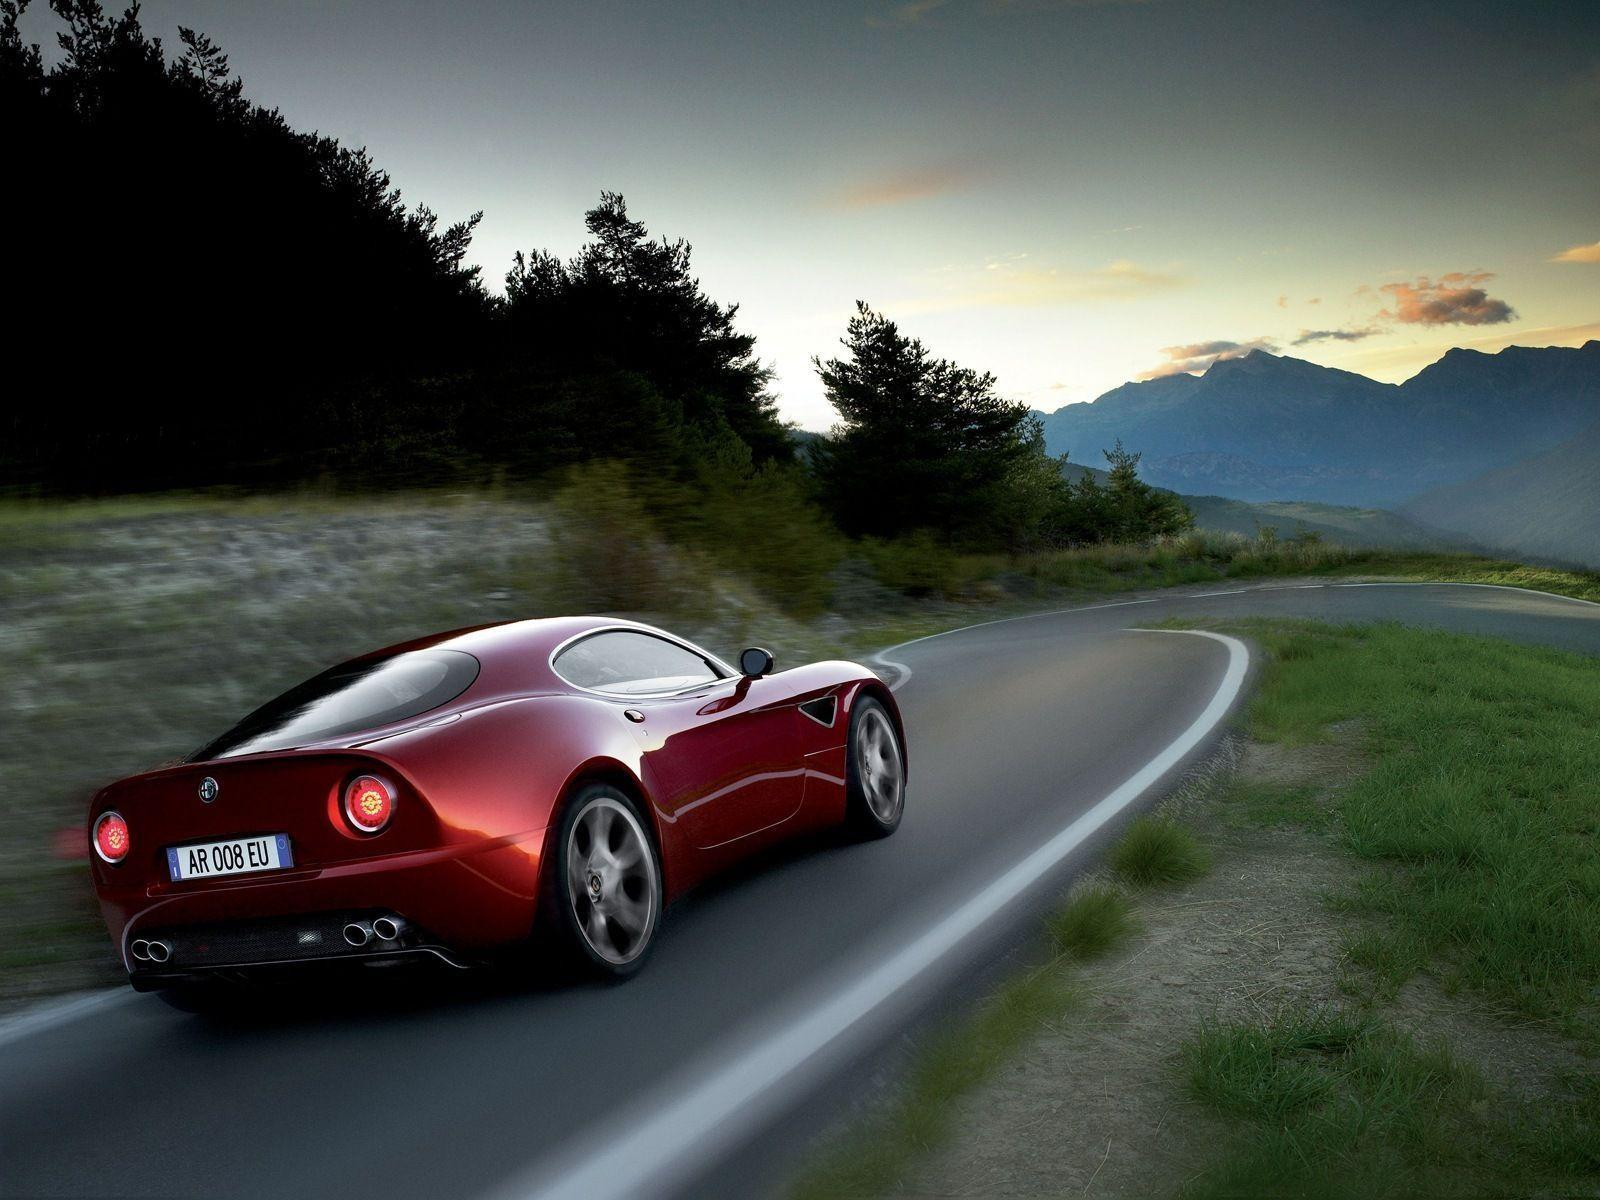 Alfa Romeo Pictures, Wallpapers, Photos & Quality Image